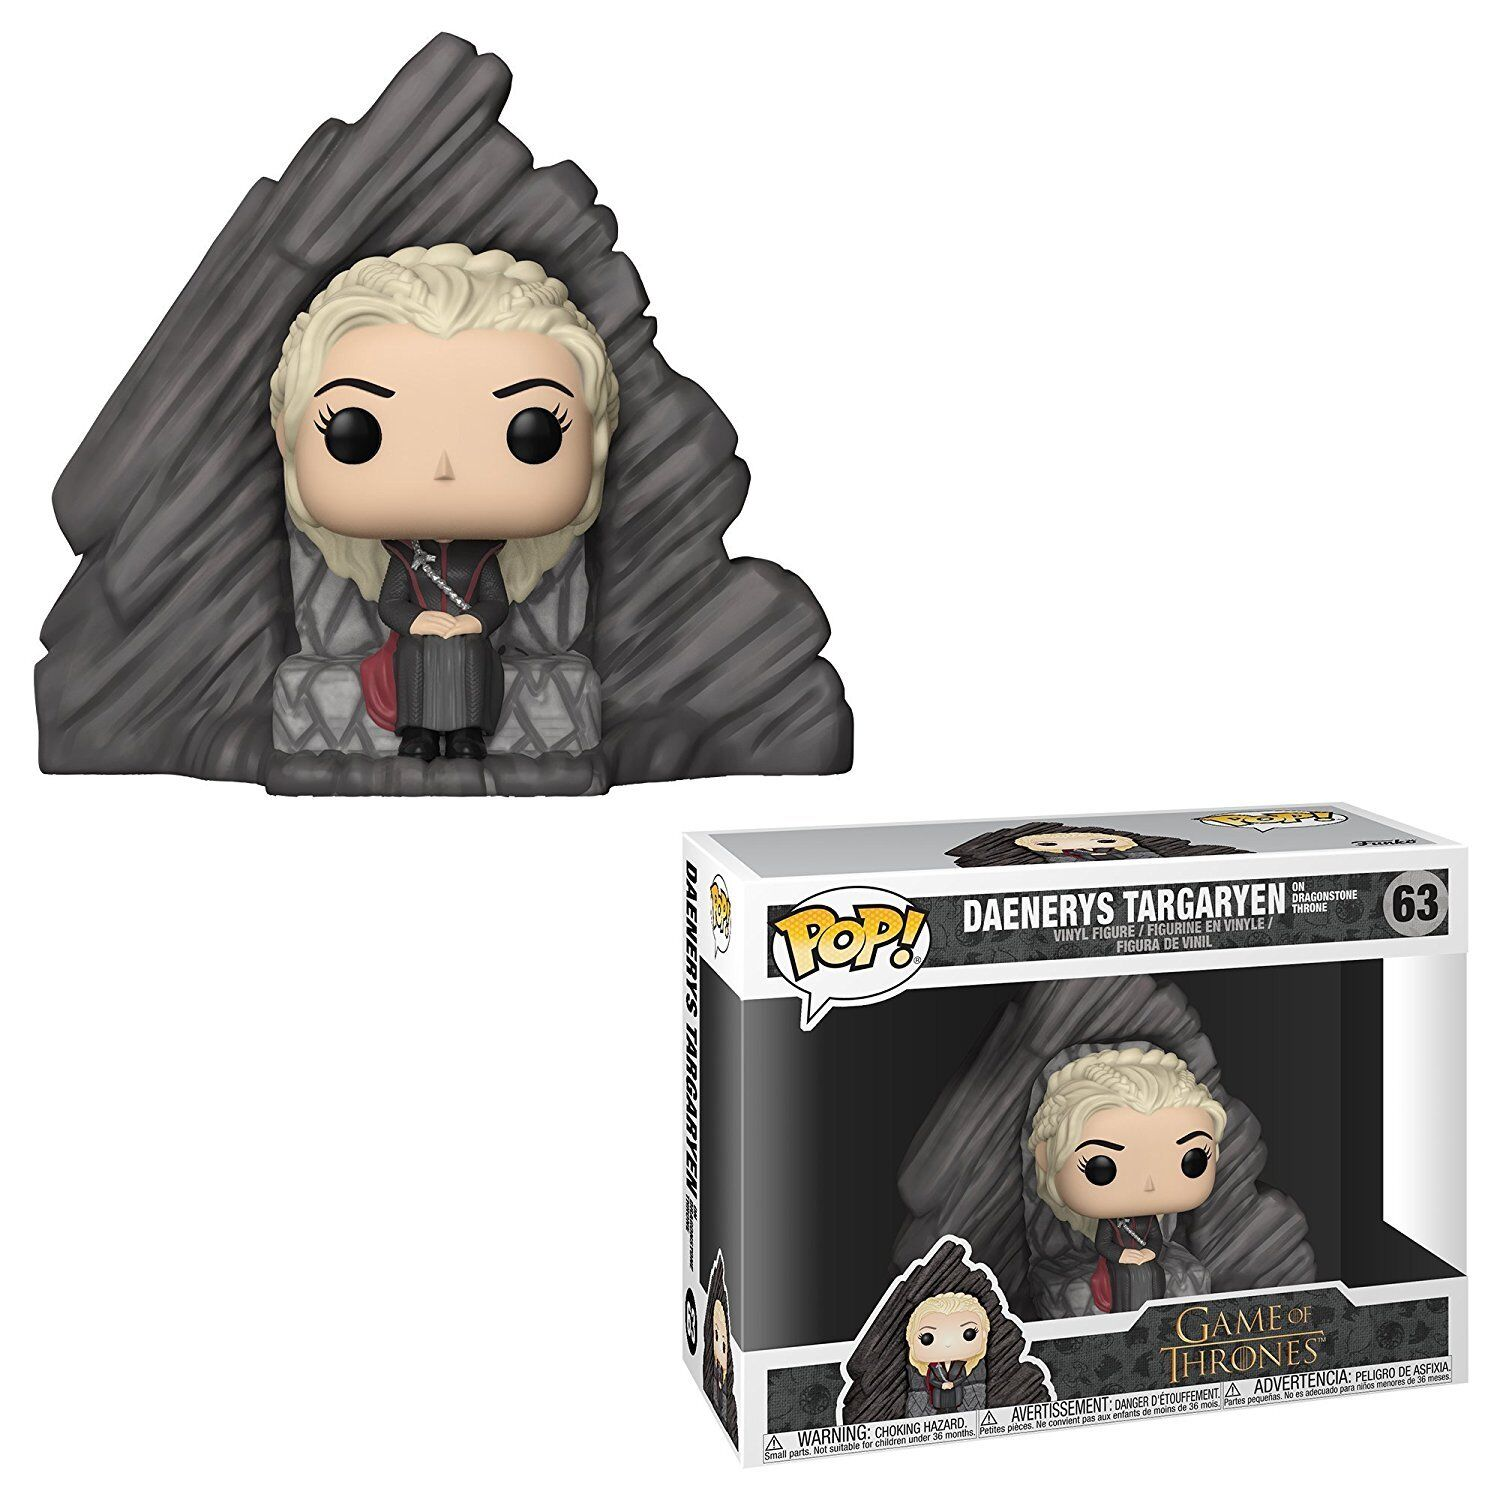 Funko pop fahrten game of thrones daenerys auf dragonstone.